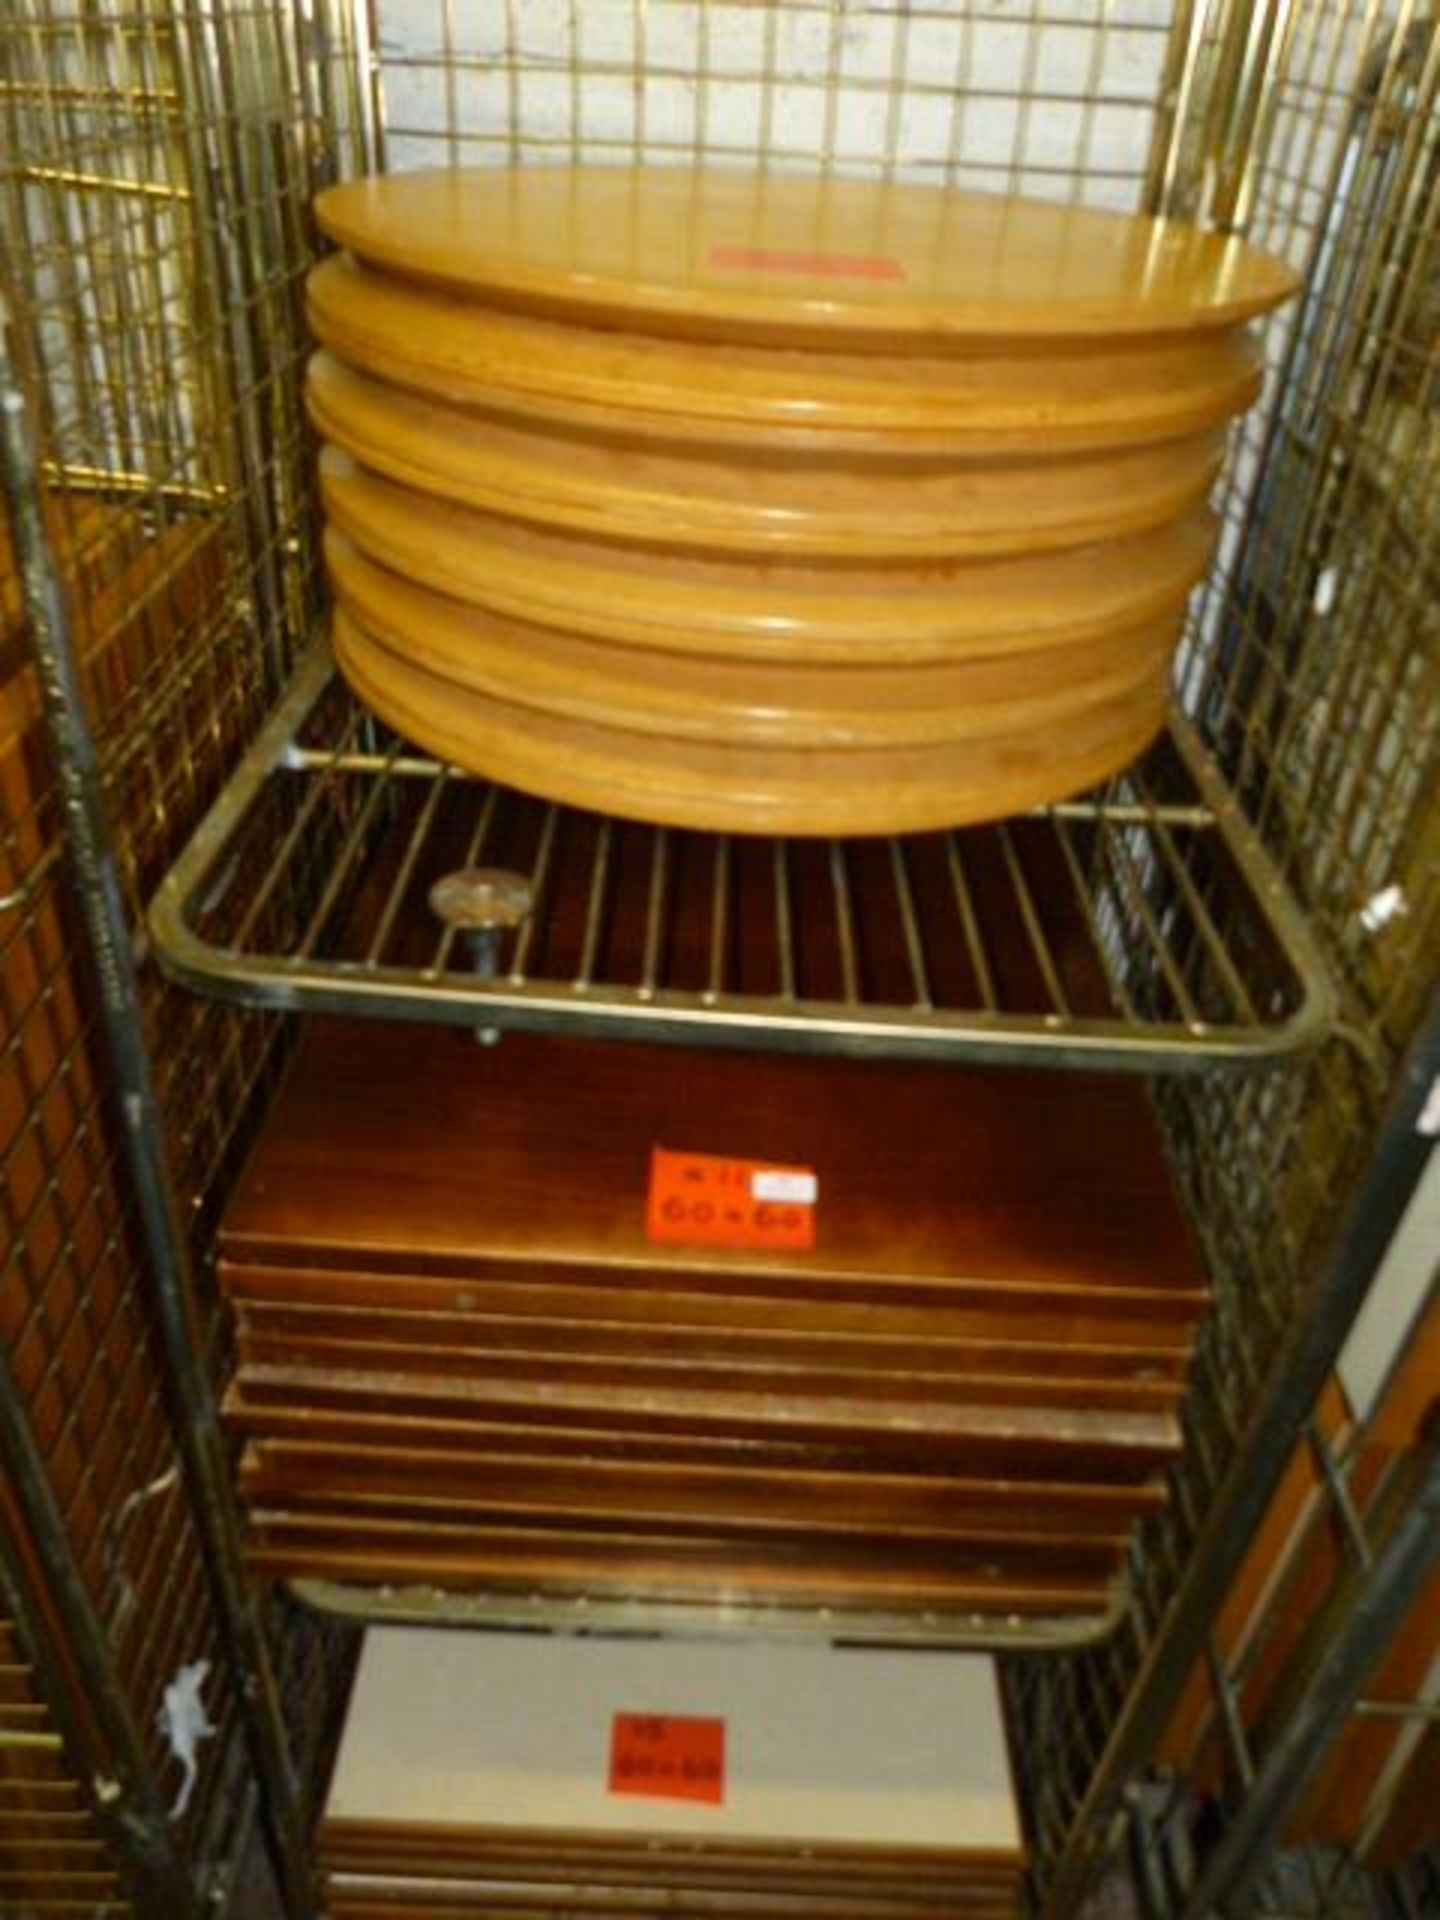 *Mixed Lot of Round & Square Table Tops - 11 - 60cm Diameter and 16 - 60x60cm